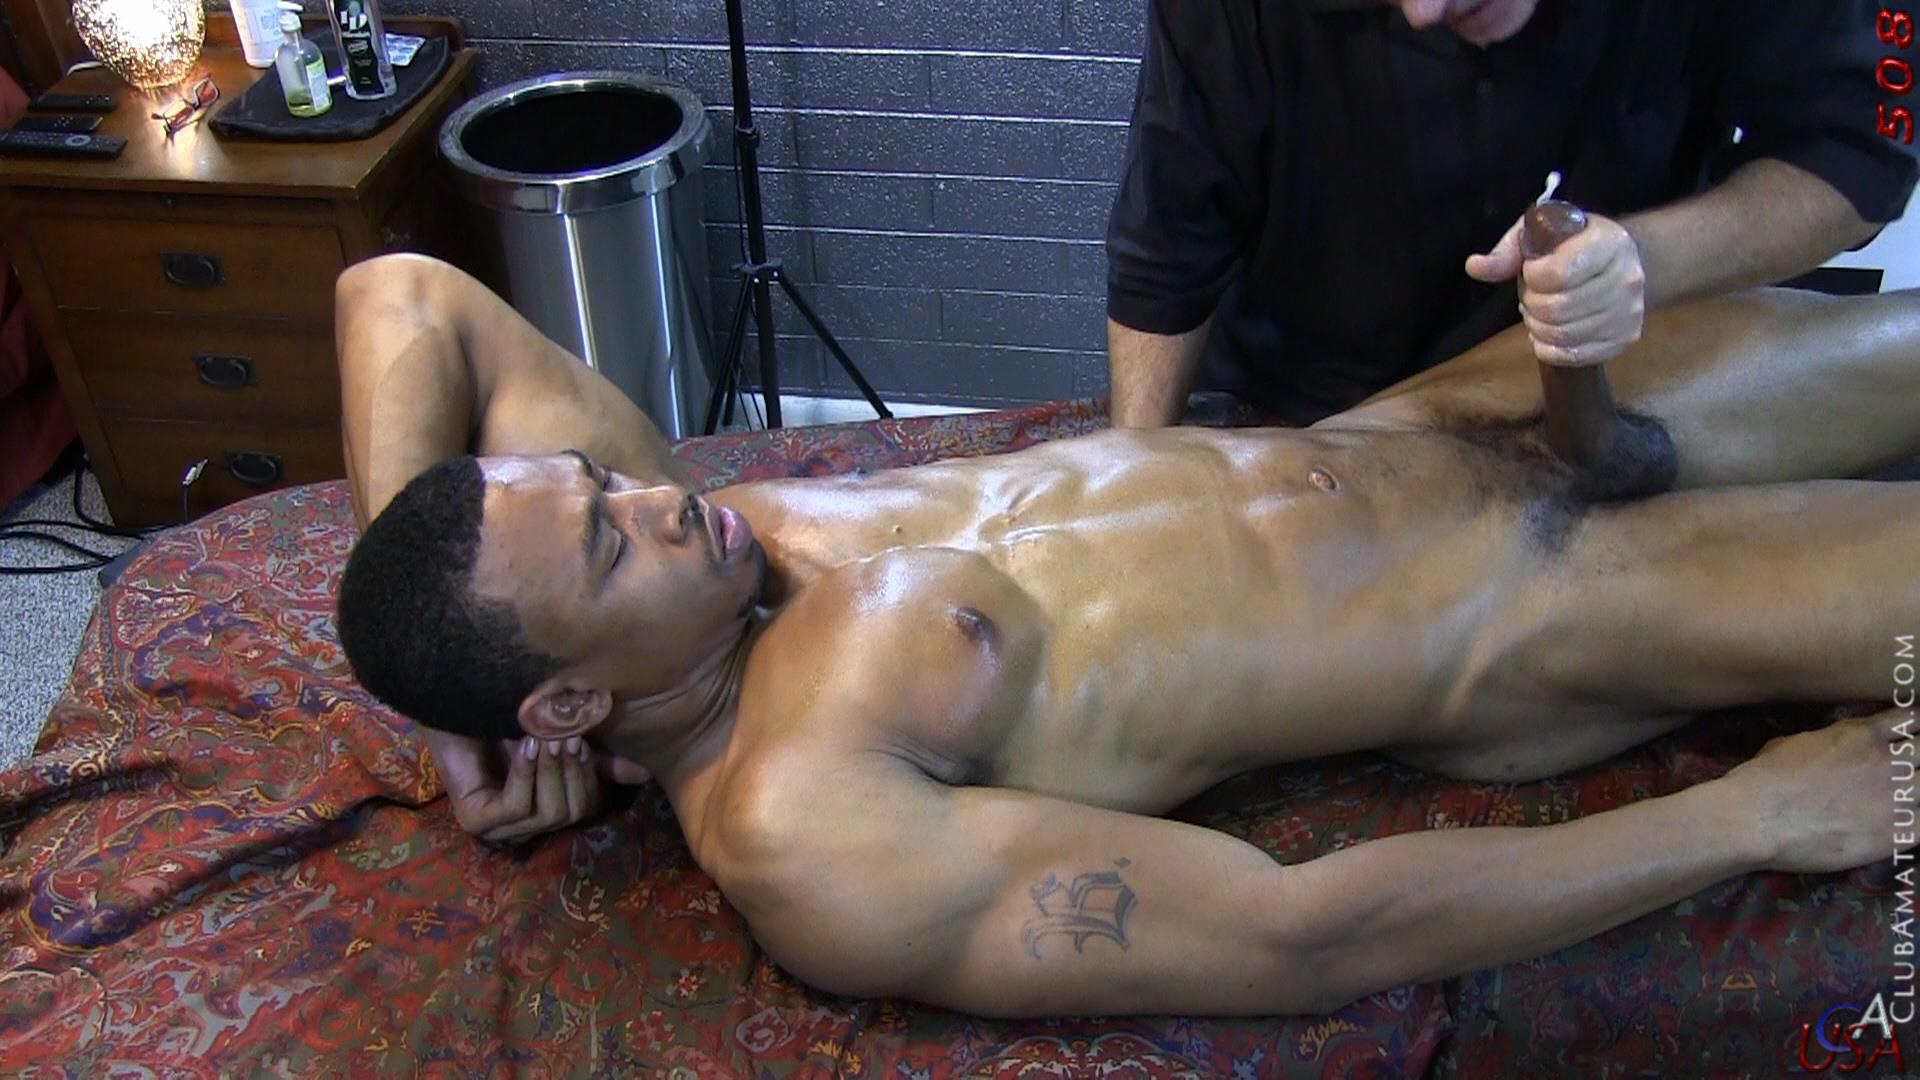 Club Amateur USA Gracen Straight Big Black Cock Getting Sucked With Cum Amateur Gay Porn 29 Straight Ghetto Thug Gets A Massage With A Happy Ending From A Guy